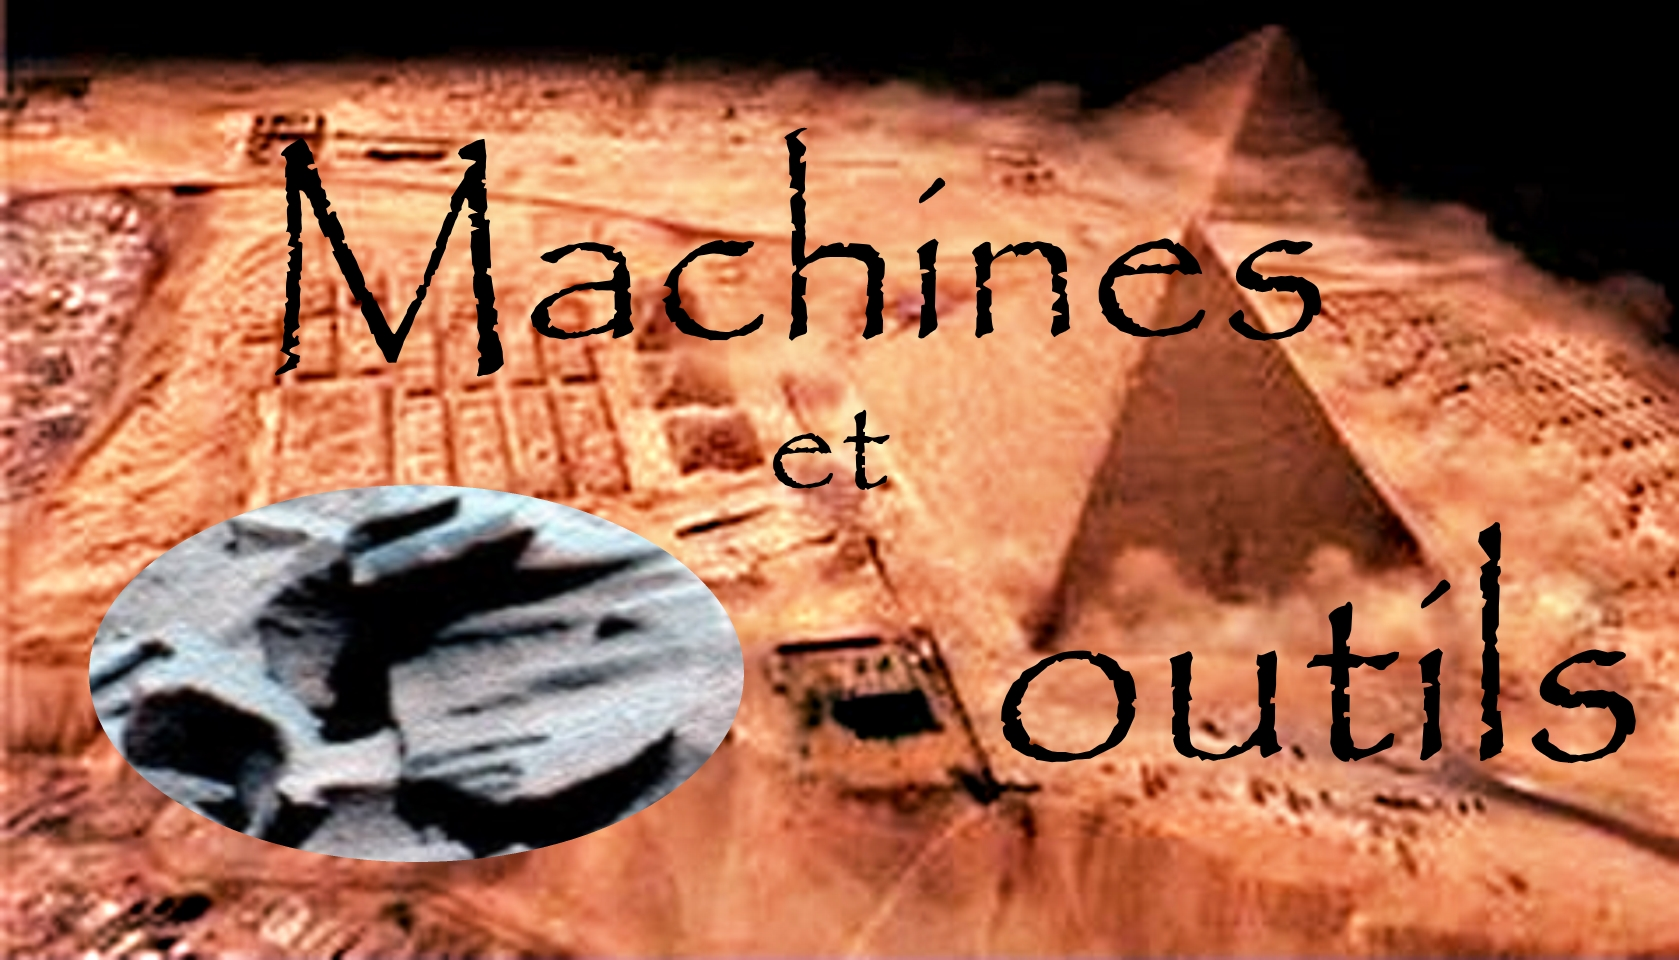 Machines et outils